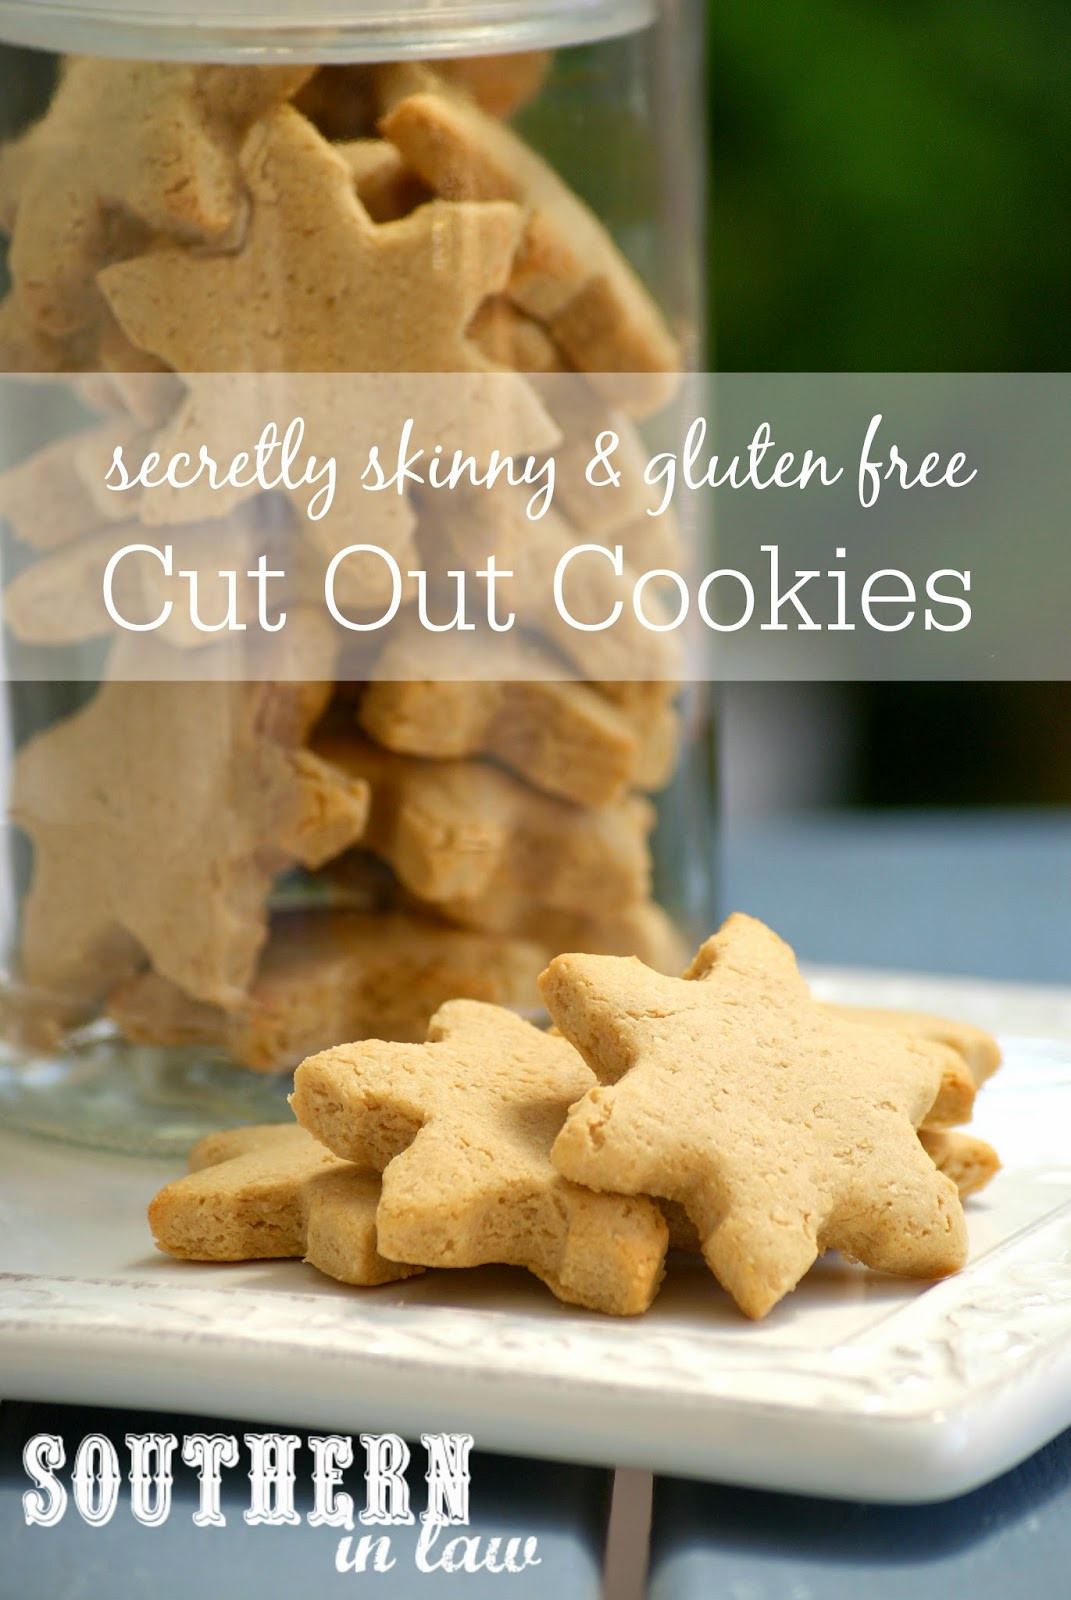 Healthy Gluten Free Cookie Recipes  Southern In Law Recipe Healthier Cut Out Cookies